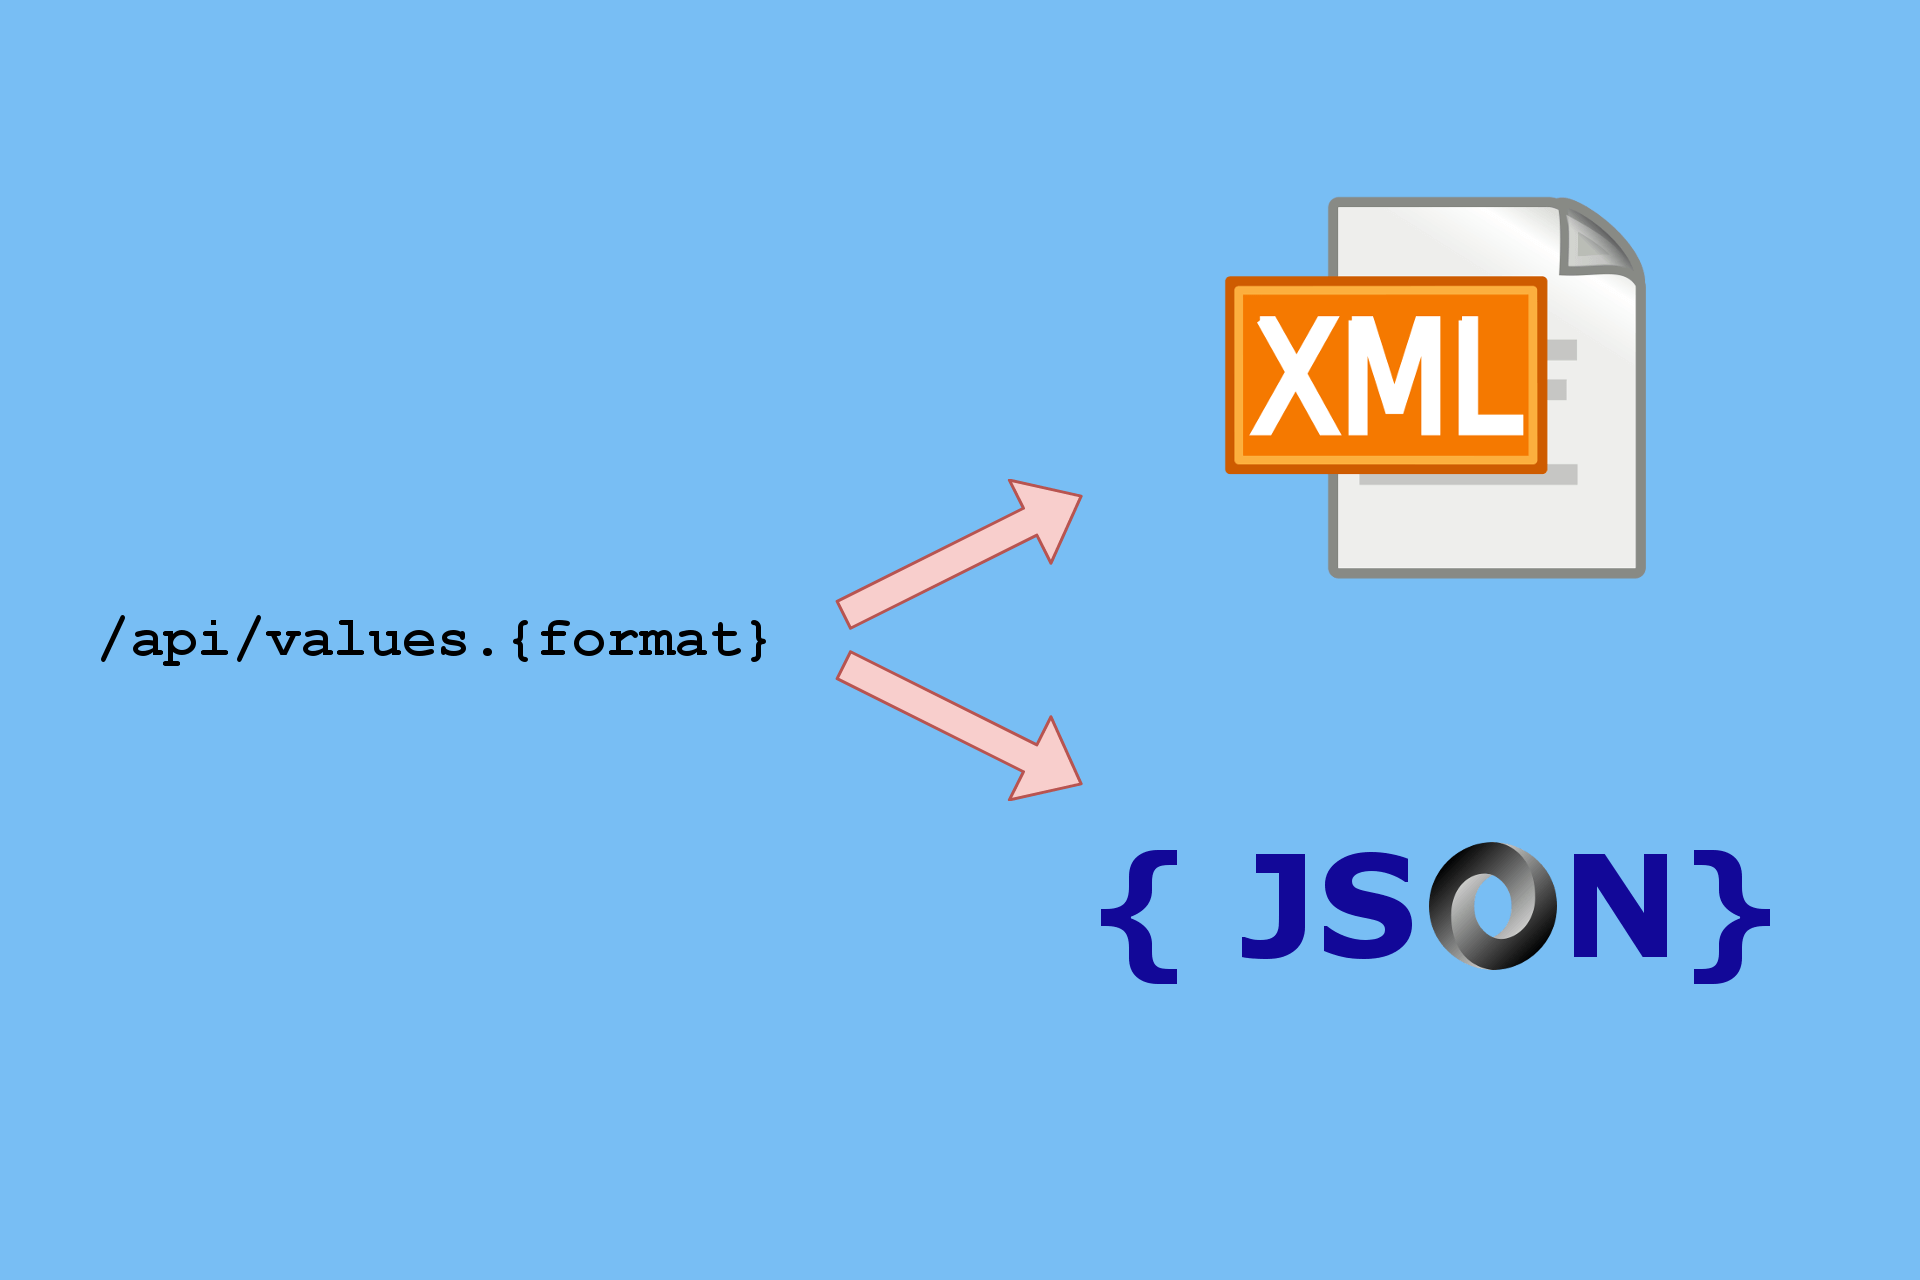 How to format response data as XML or JSON, based on the request URL